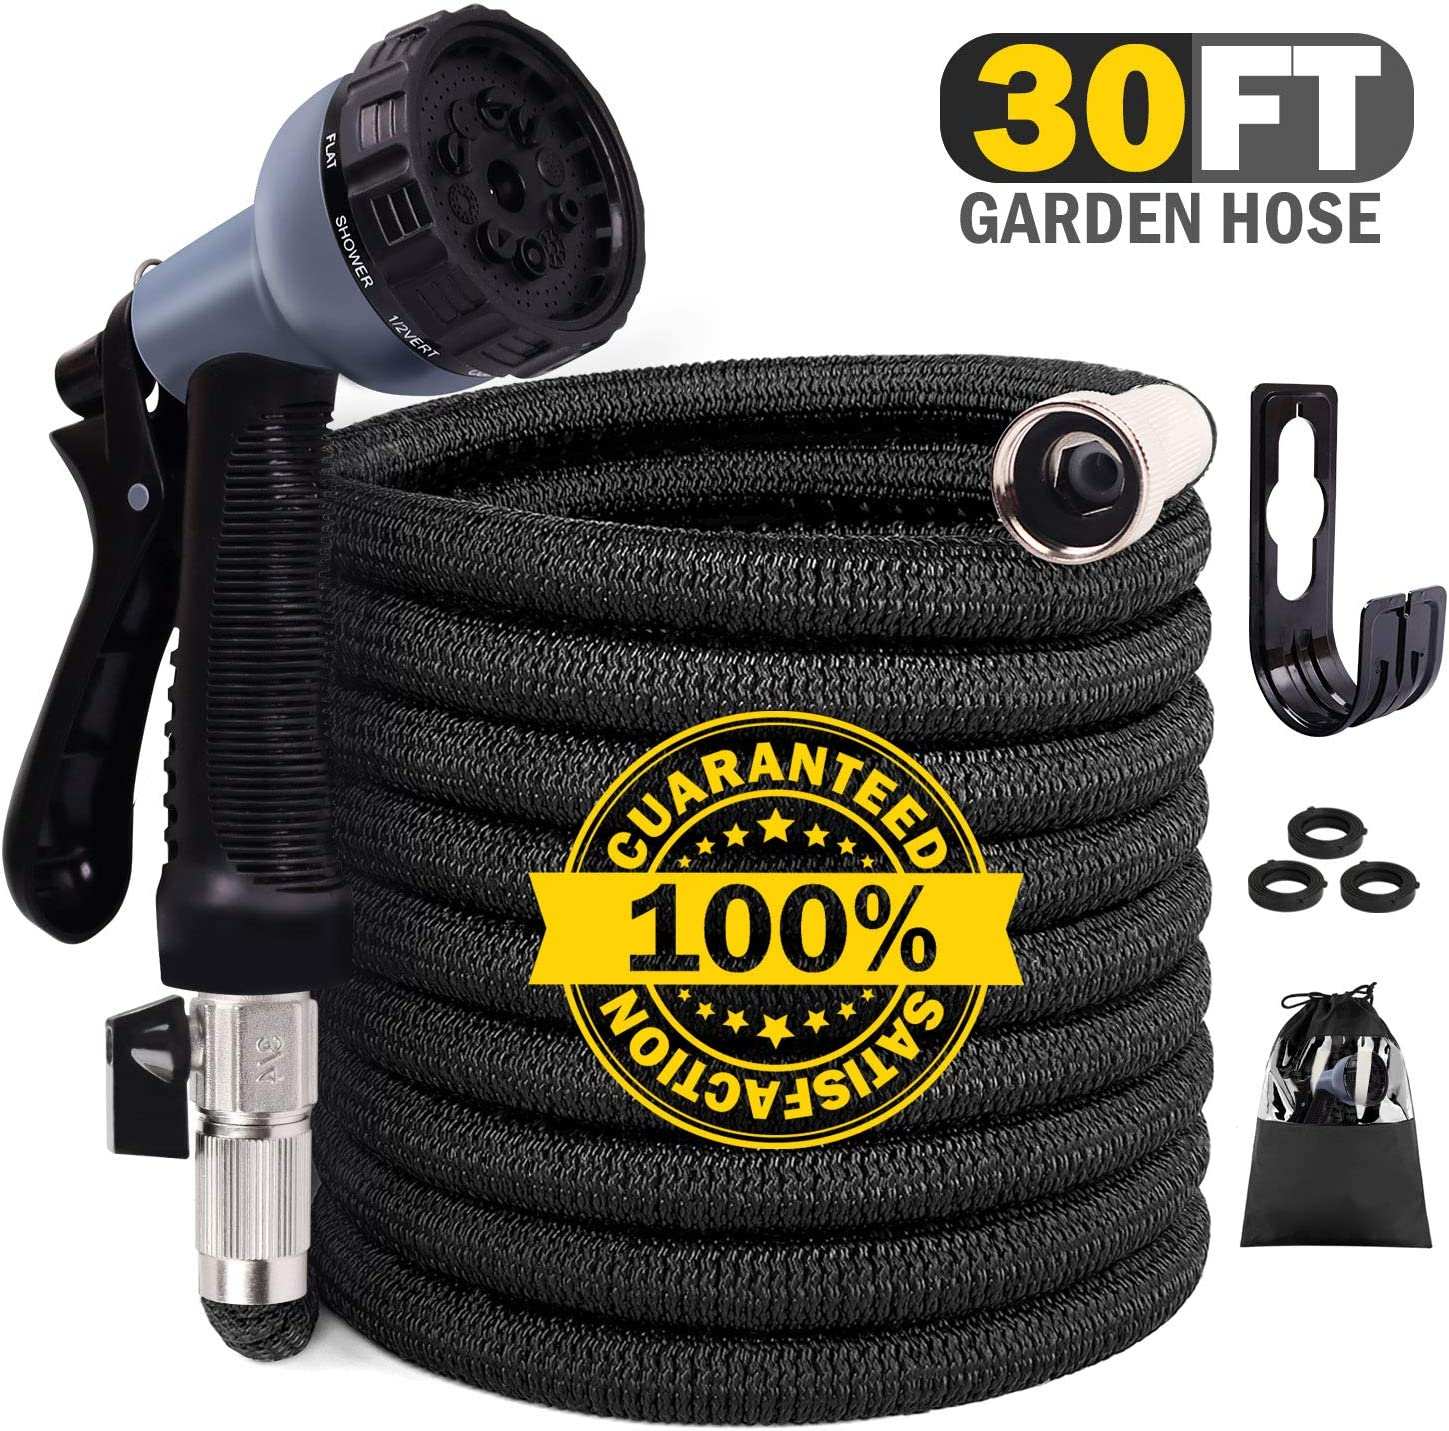 Expandable Garden Hose, 30ft Flexible Hose with Multilayer Latex Core, Water Hose with 10 Functions Nozzle,3/4